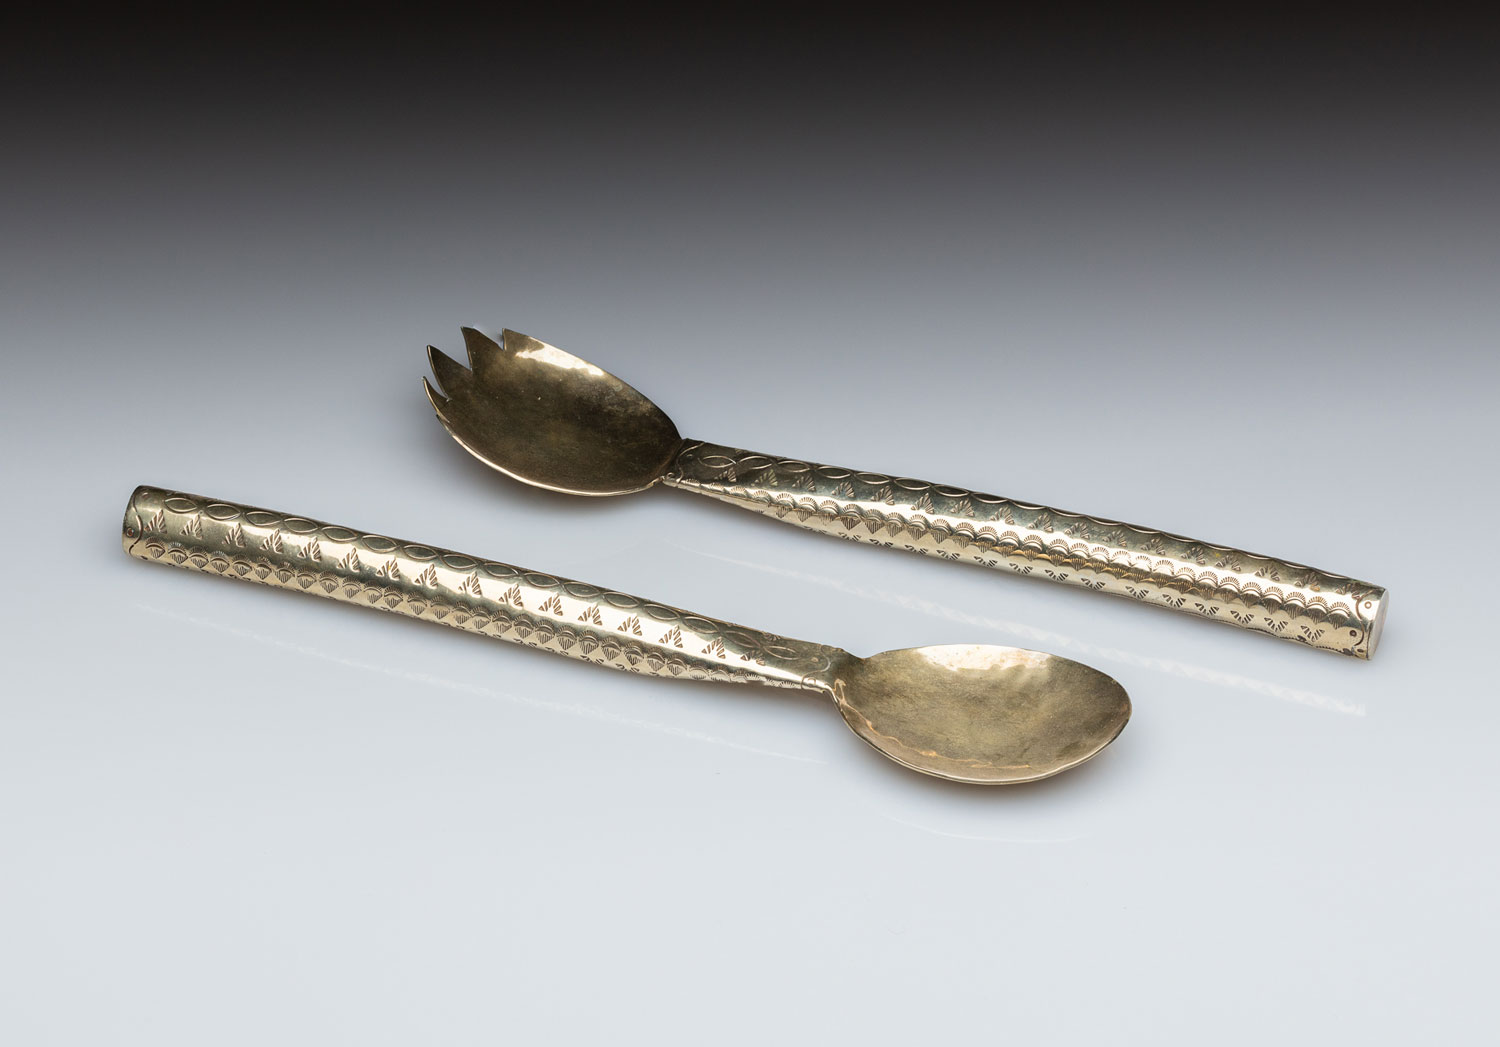 Native American silverware